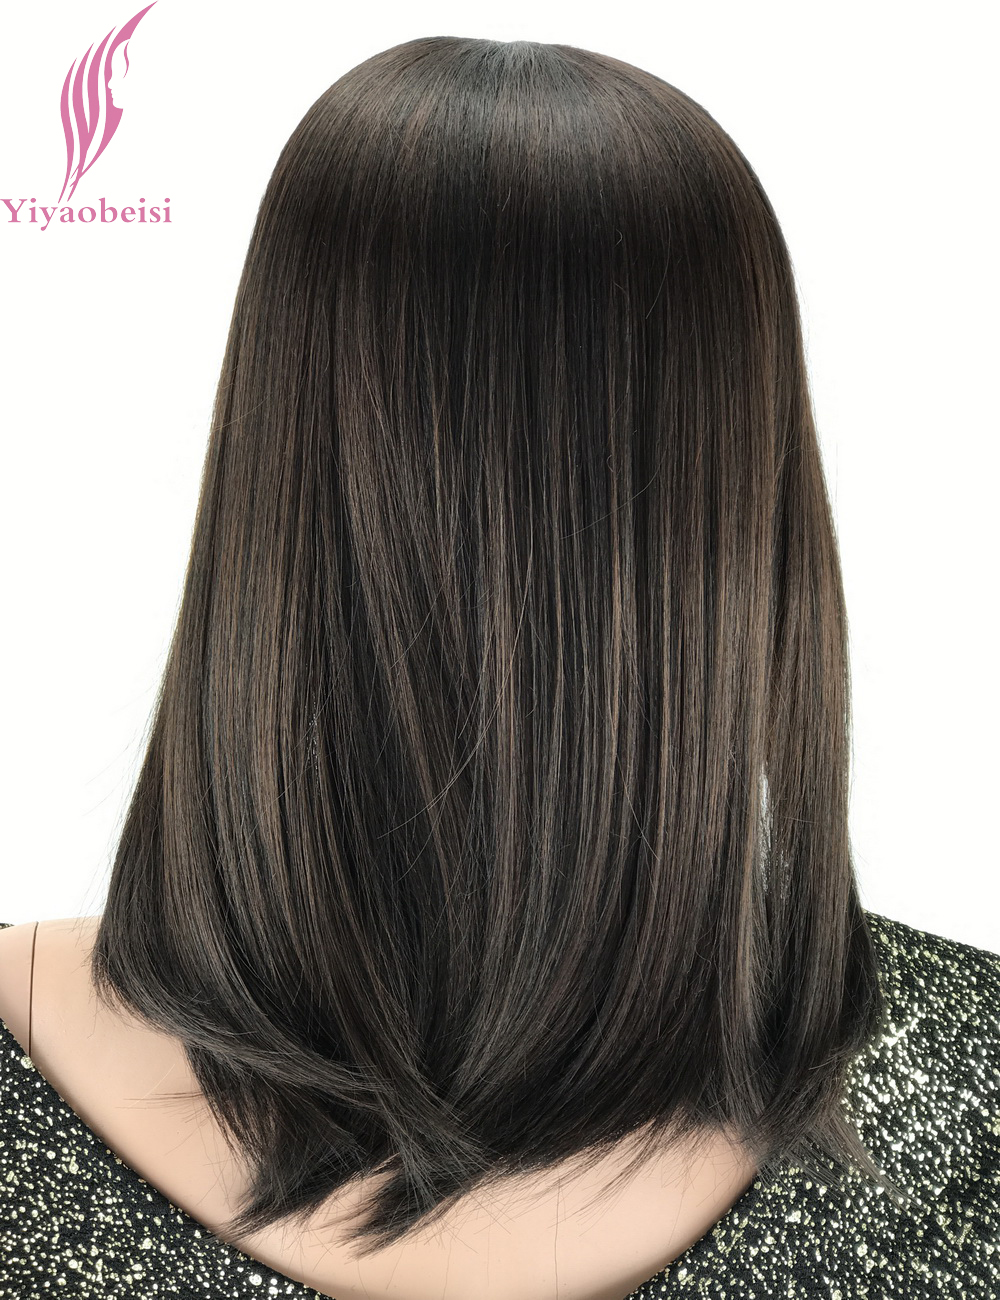 Yiyaobess 14inch Synthetic Shoulder Length Straight Medium Hair Bob